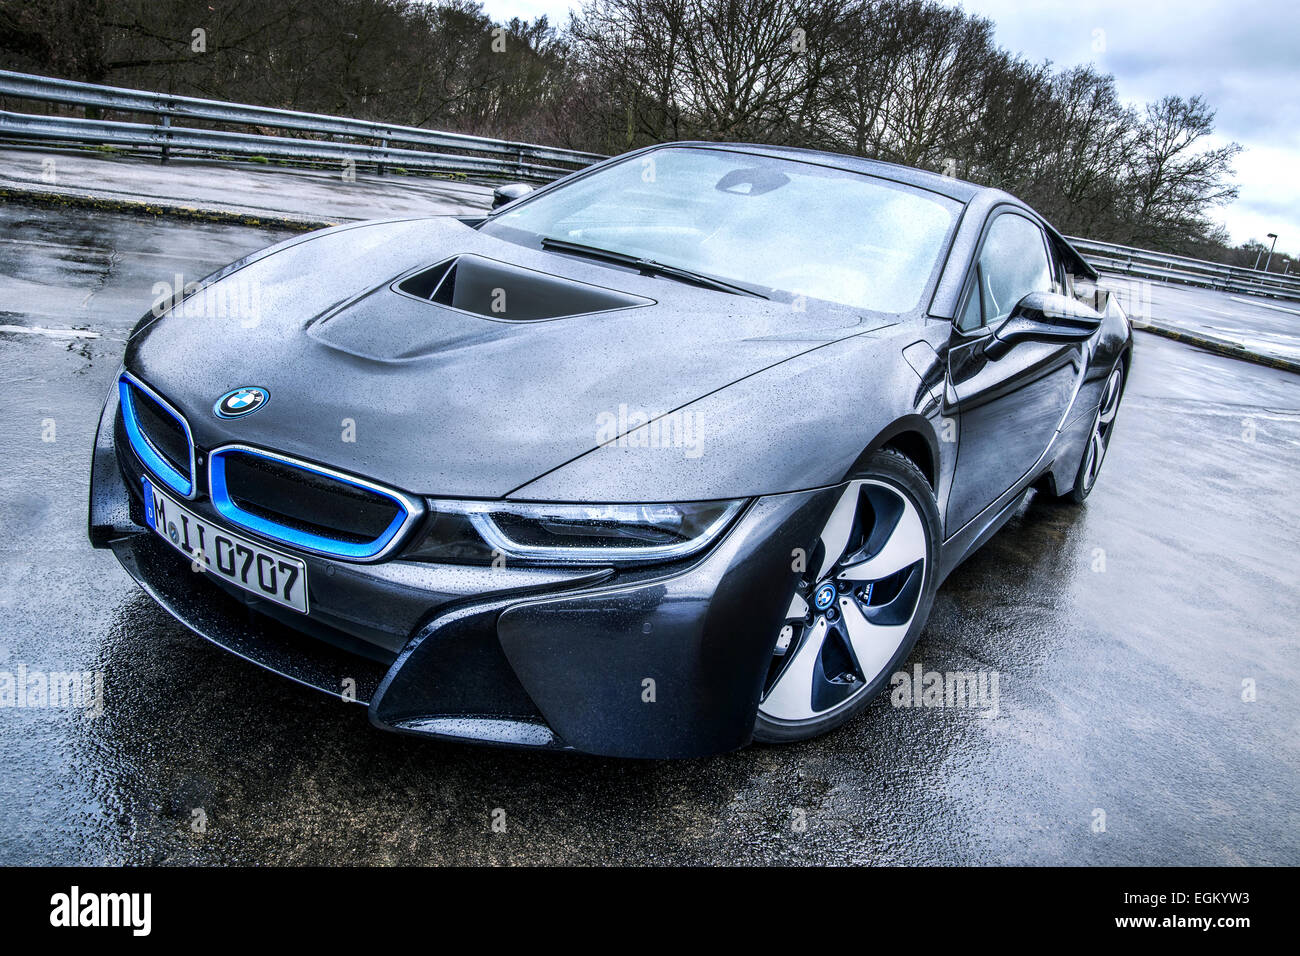 Bmw I8 Parking Scene License Plate Is Changed Stock Photo 79114927